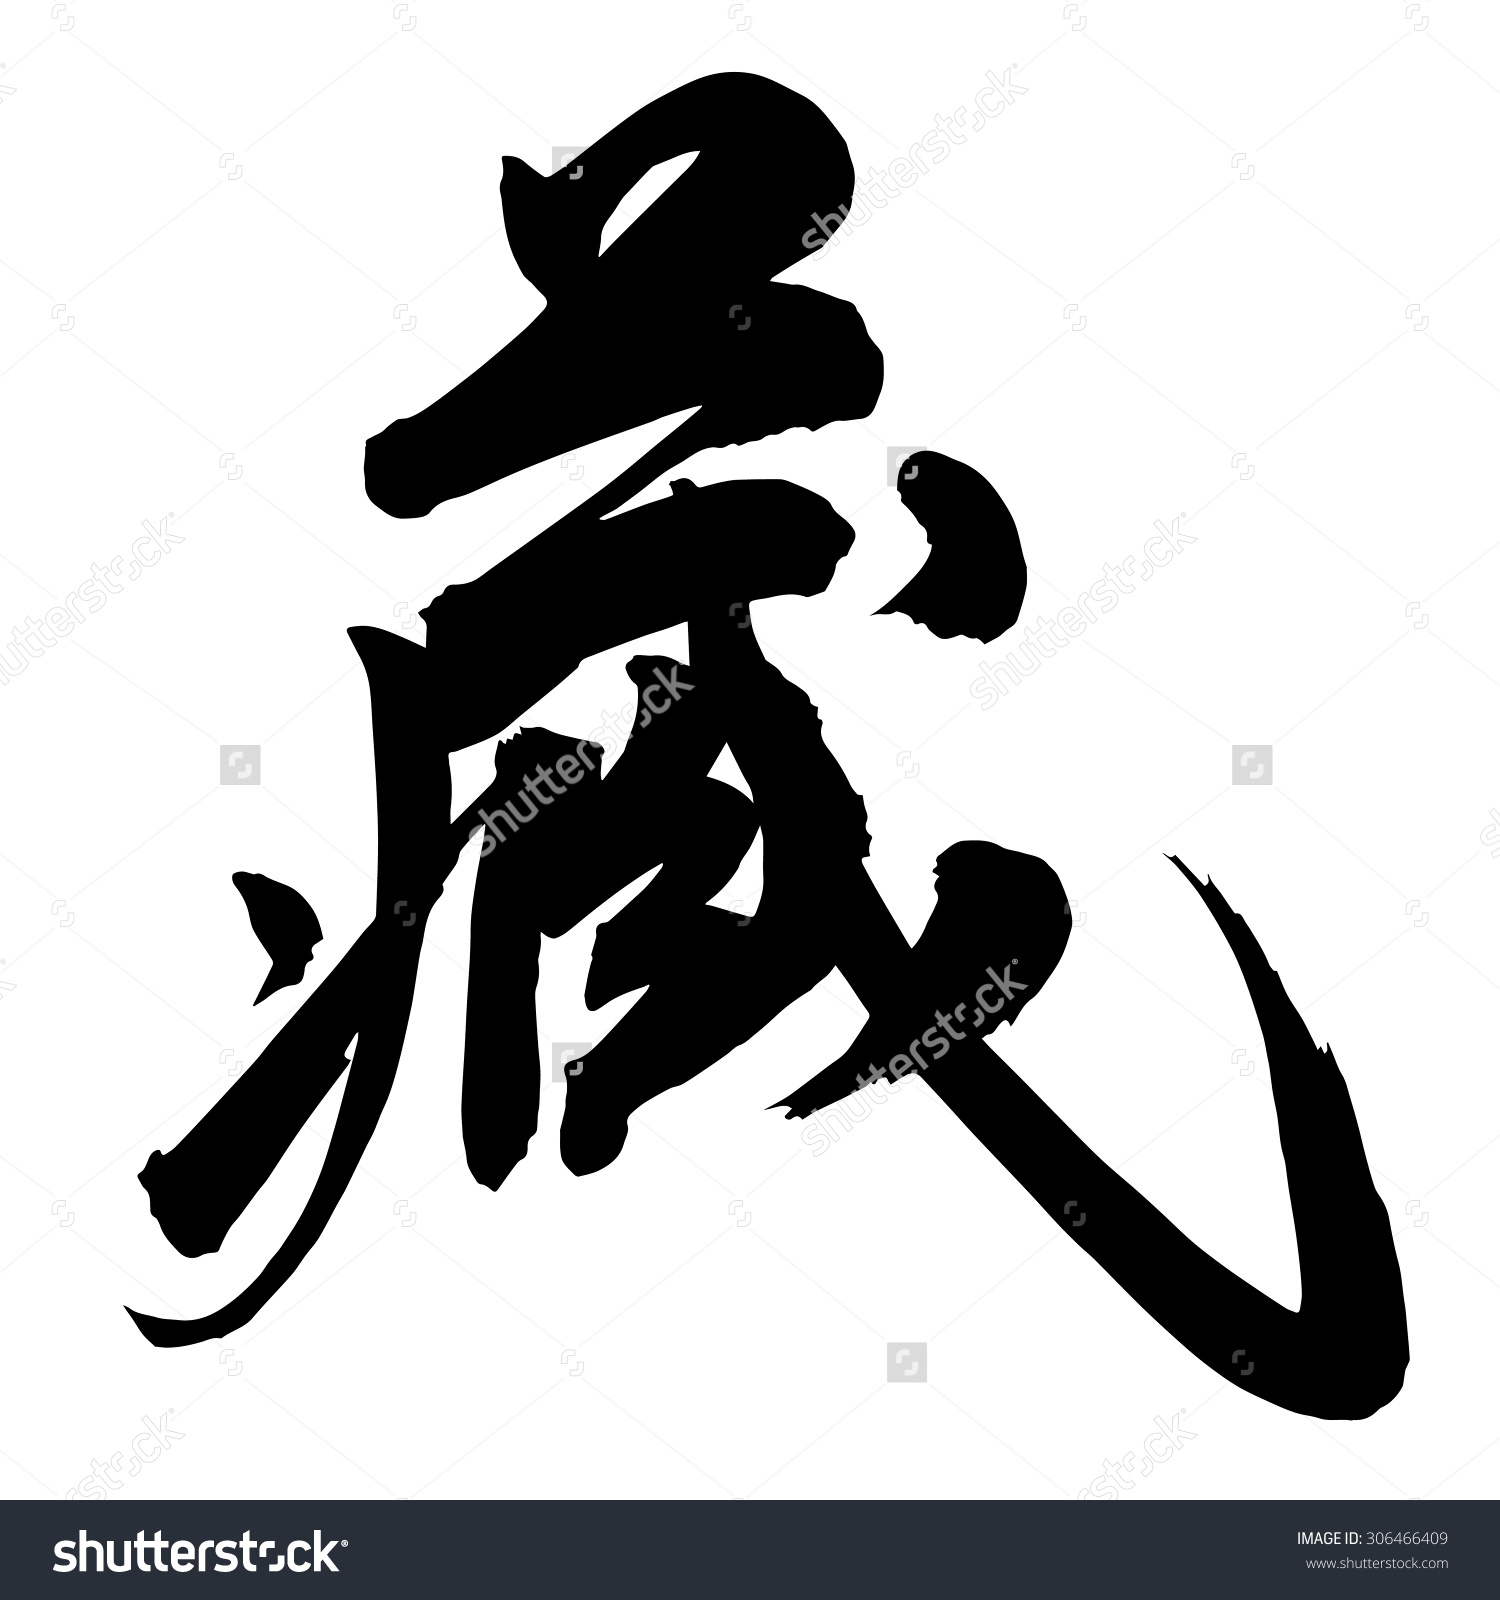 Chinese Calligraphy cang, Translation: to conceal, to store.